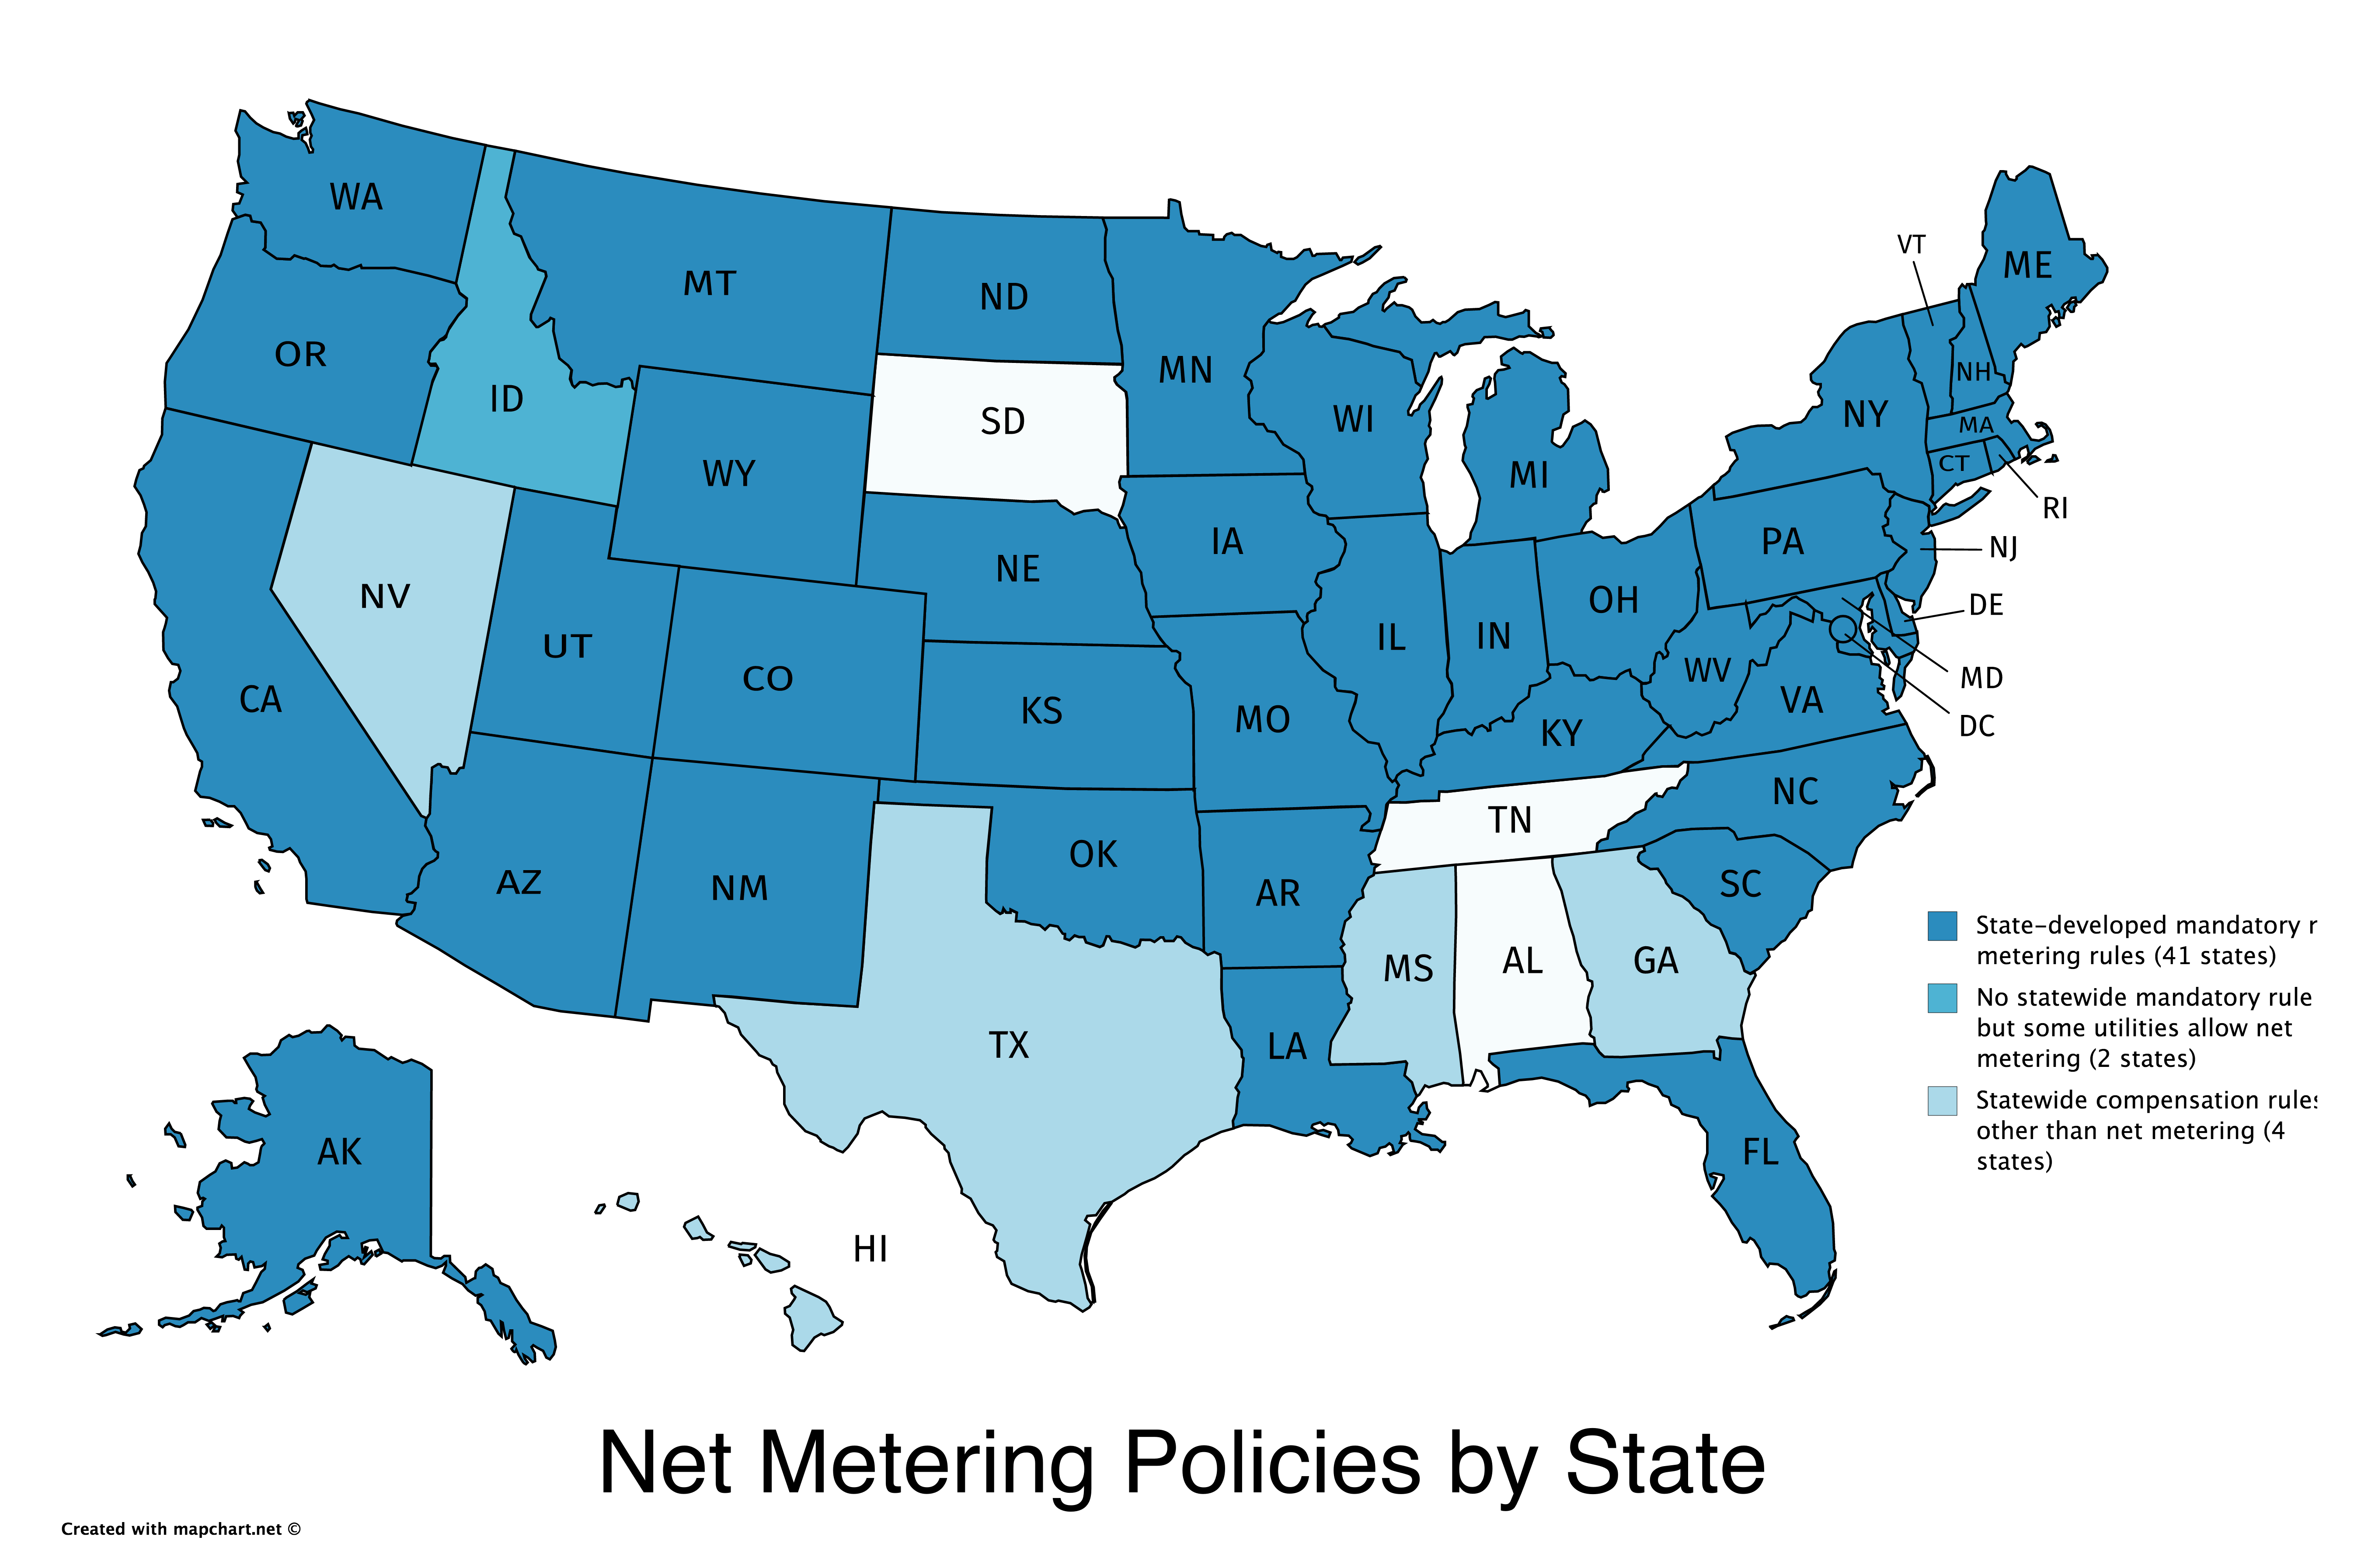 States with net metering policies